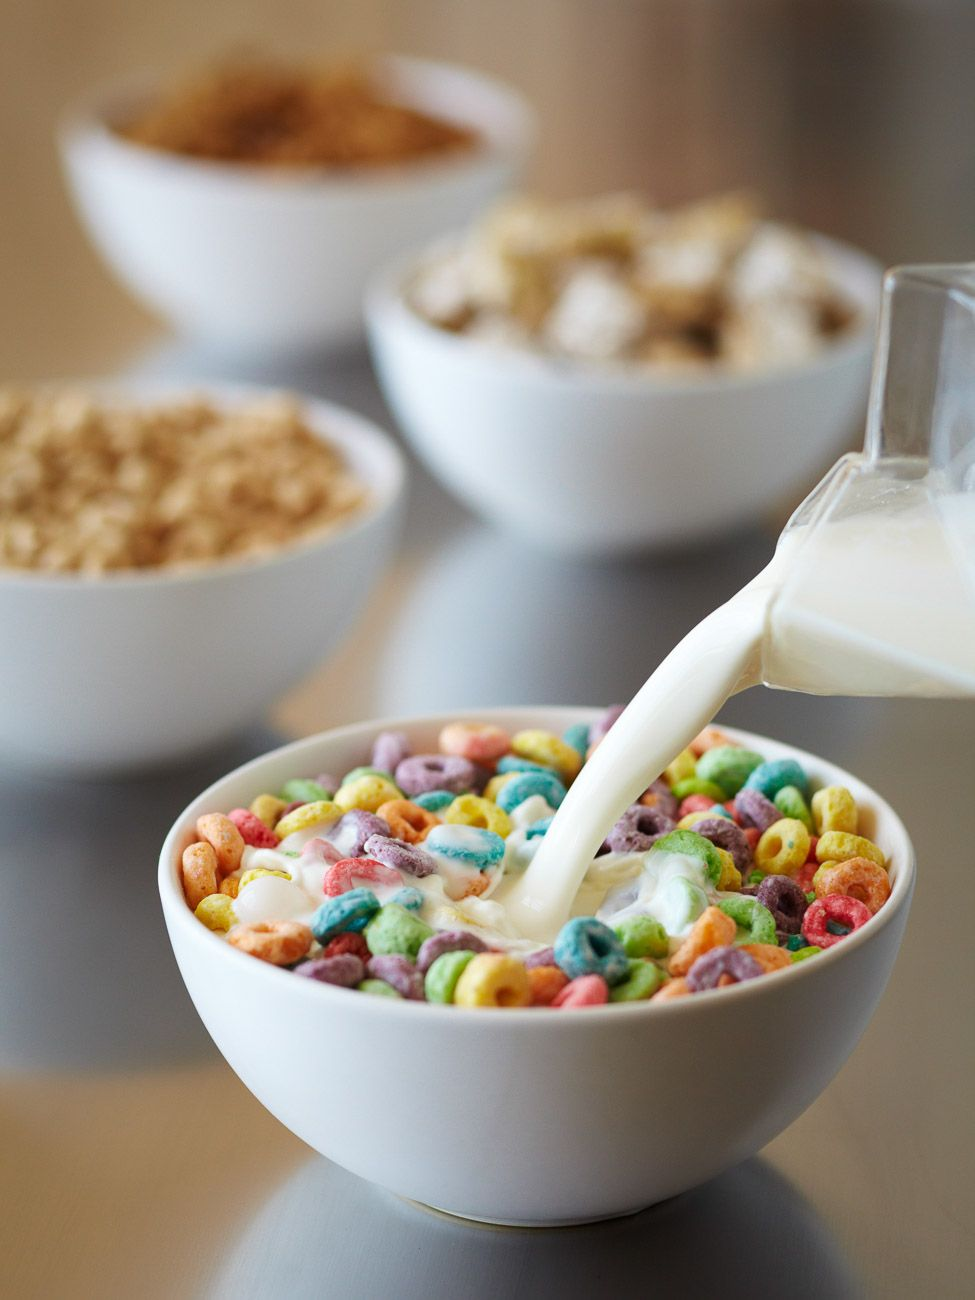 fruit-loops-cereal-food-stylist-san-francisco.jpg